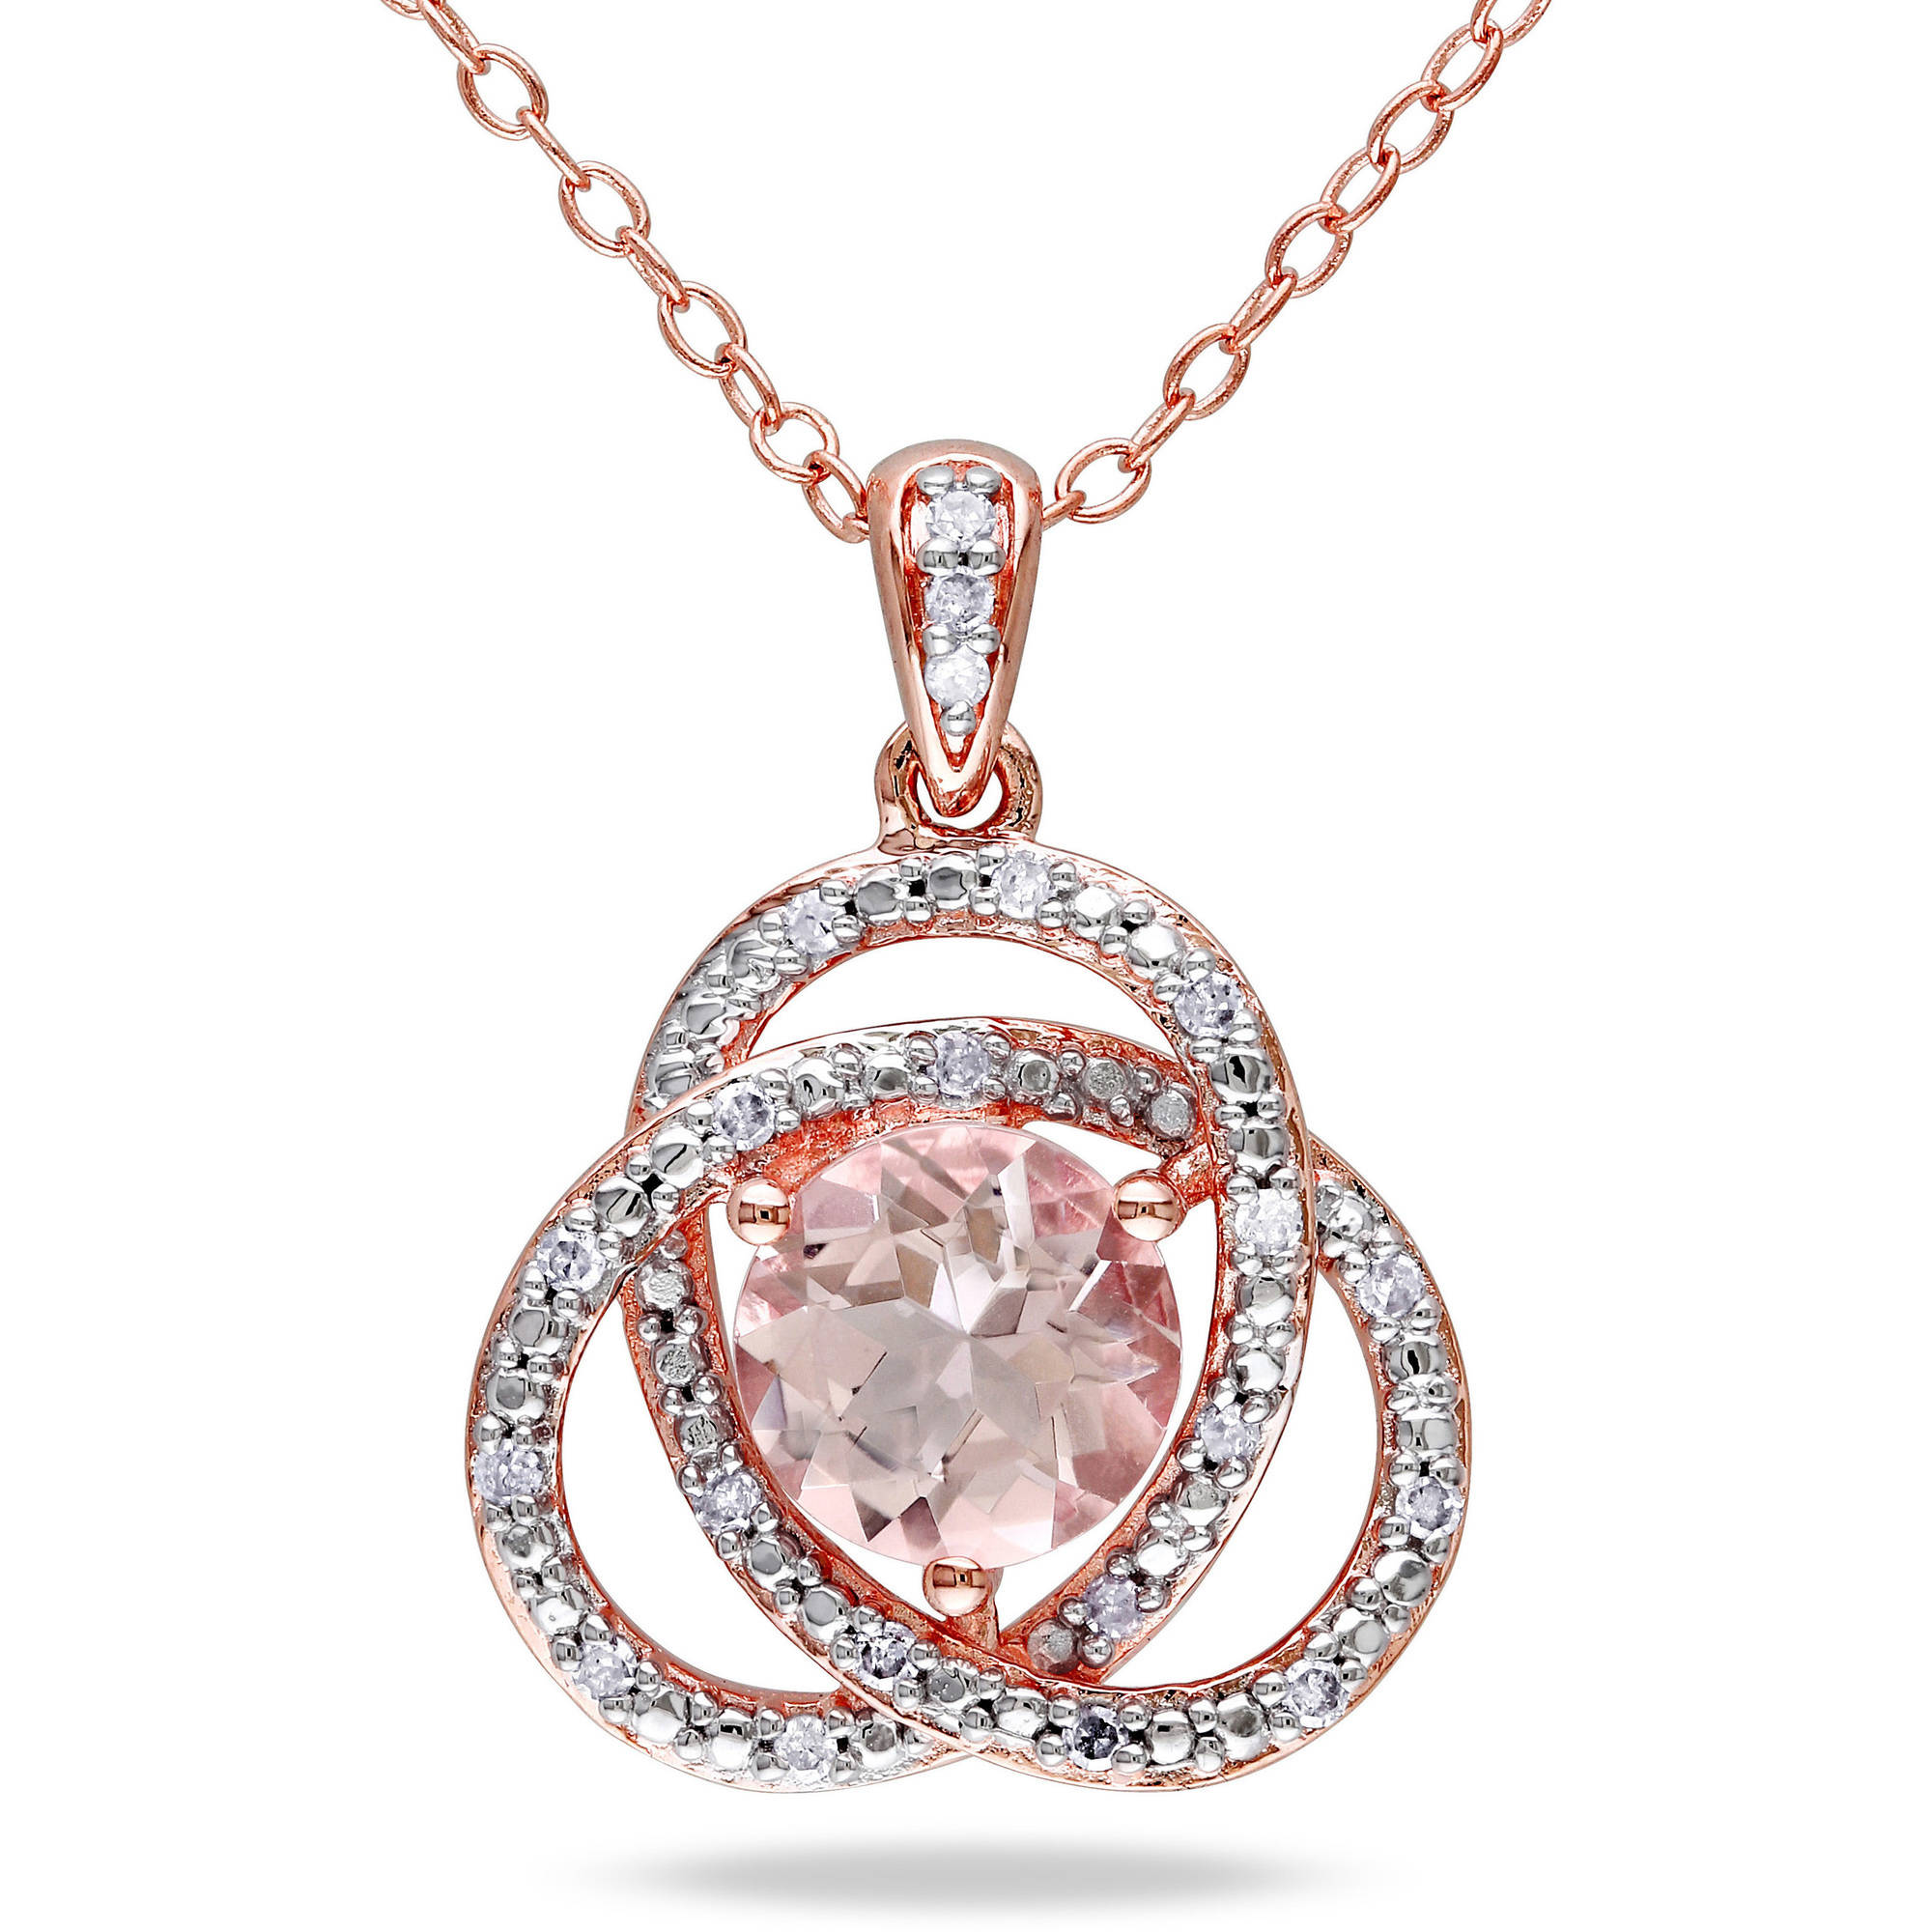 "1-1 6 Carat T.G.W. Morganite and Diamond Accent Pink Rhodium-Plated Sterling Silver Fashion Pendant, 18"" by Generic"